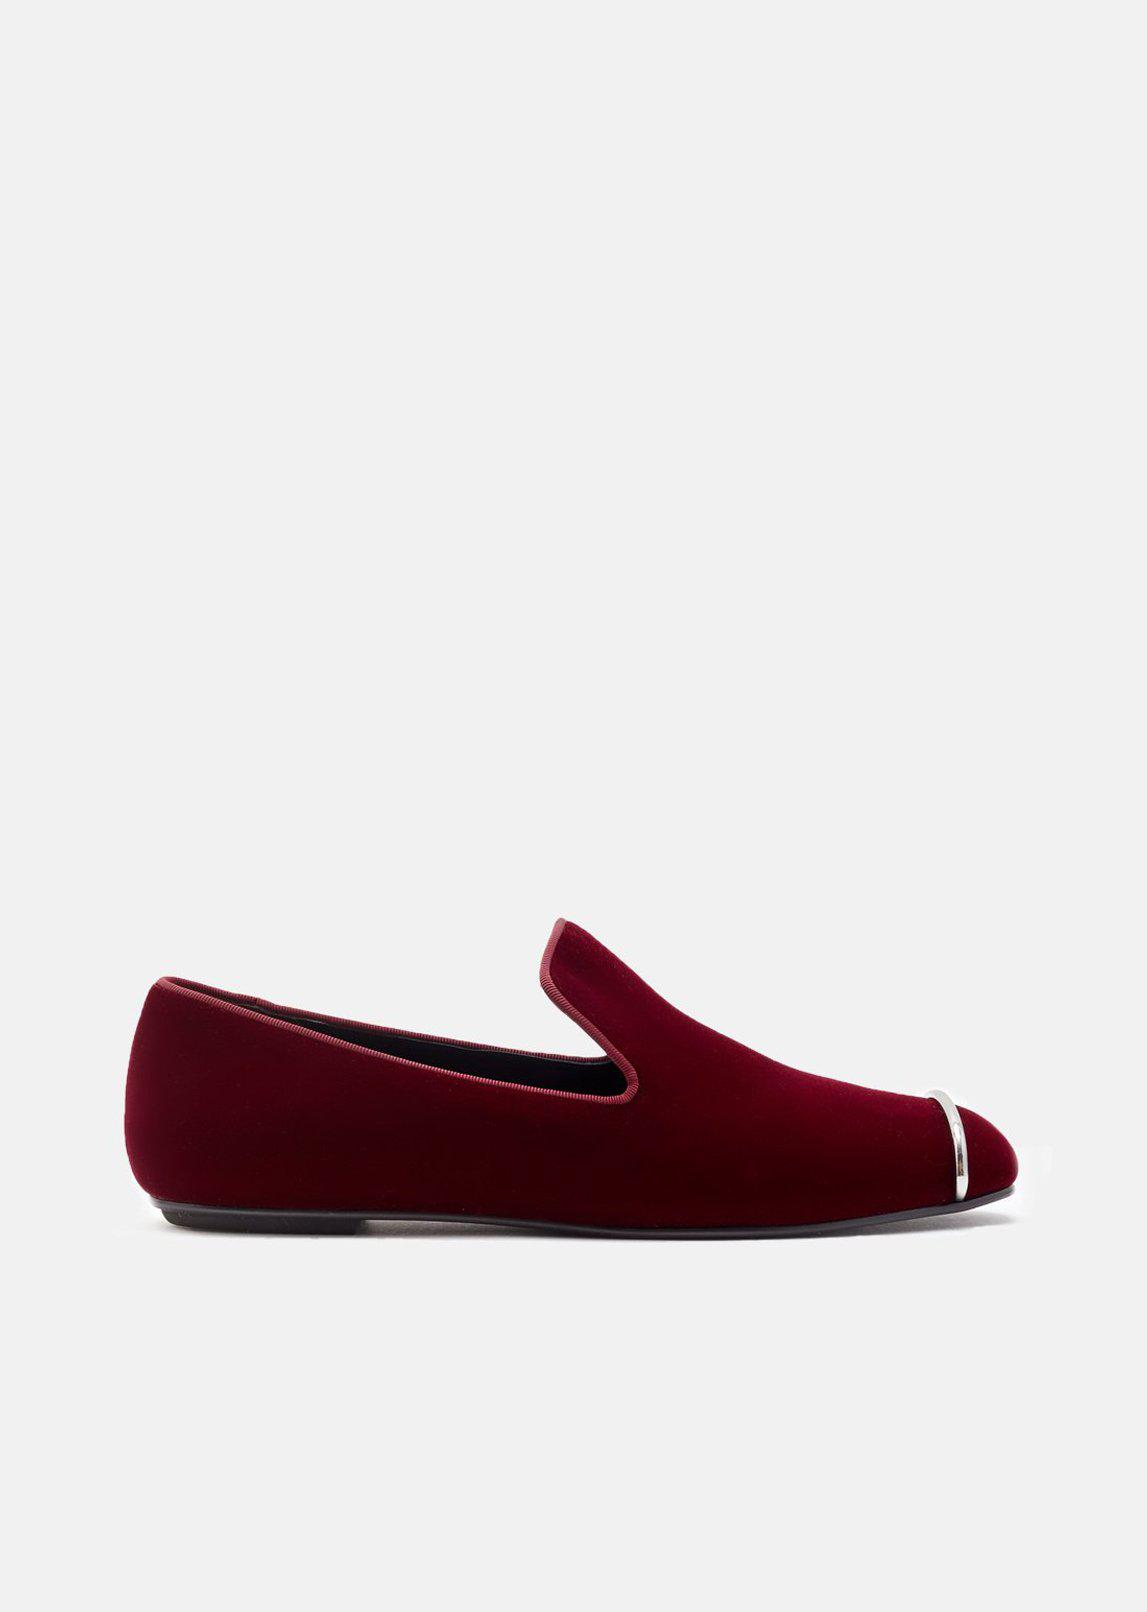 outlet with paypal order geniue stockist online Alexander Wang Kallie Velvet Loafers w/ Tags free shipping explore outlet limited edition s9vCK